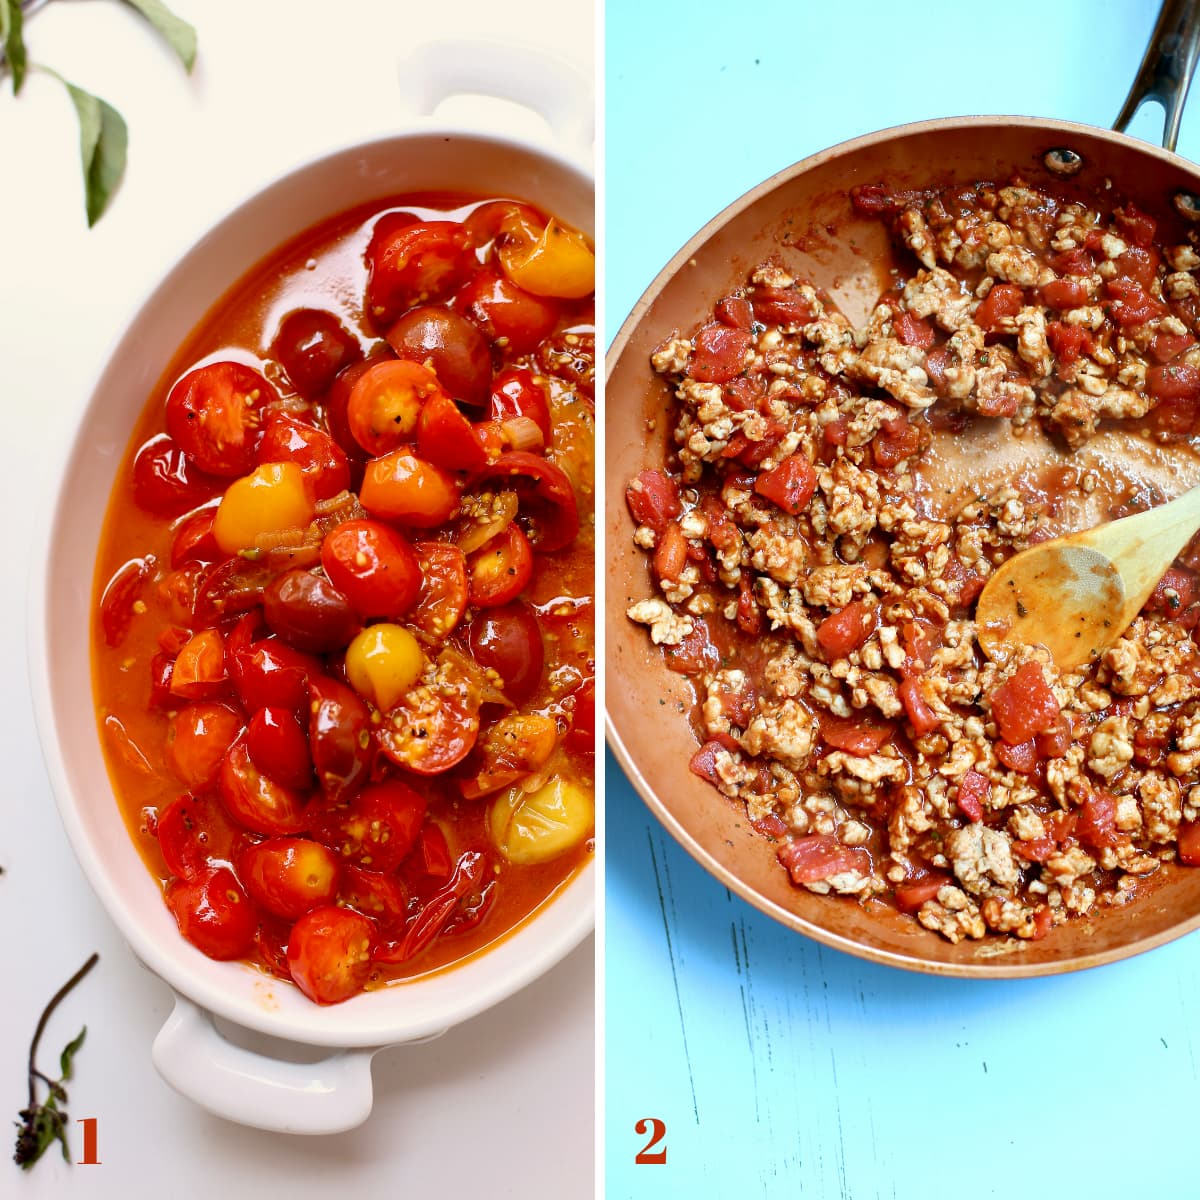 two photos, one with sauteed cherry tomatoes on the left, the other with cooked sausage crumbles on the right.